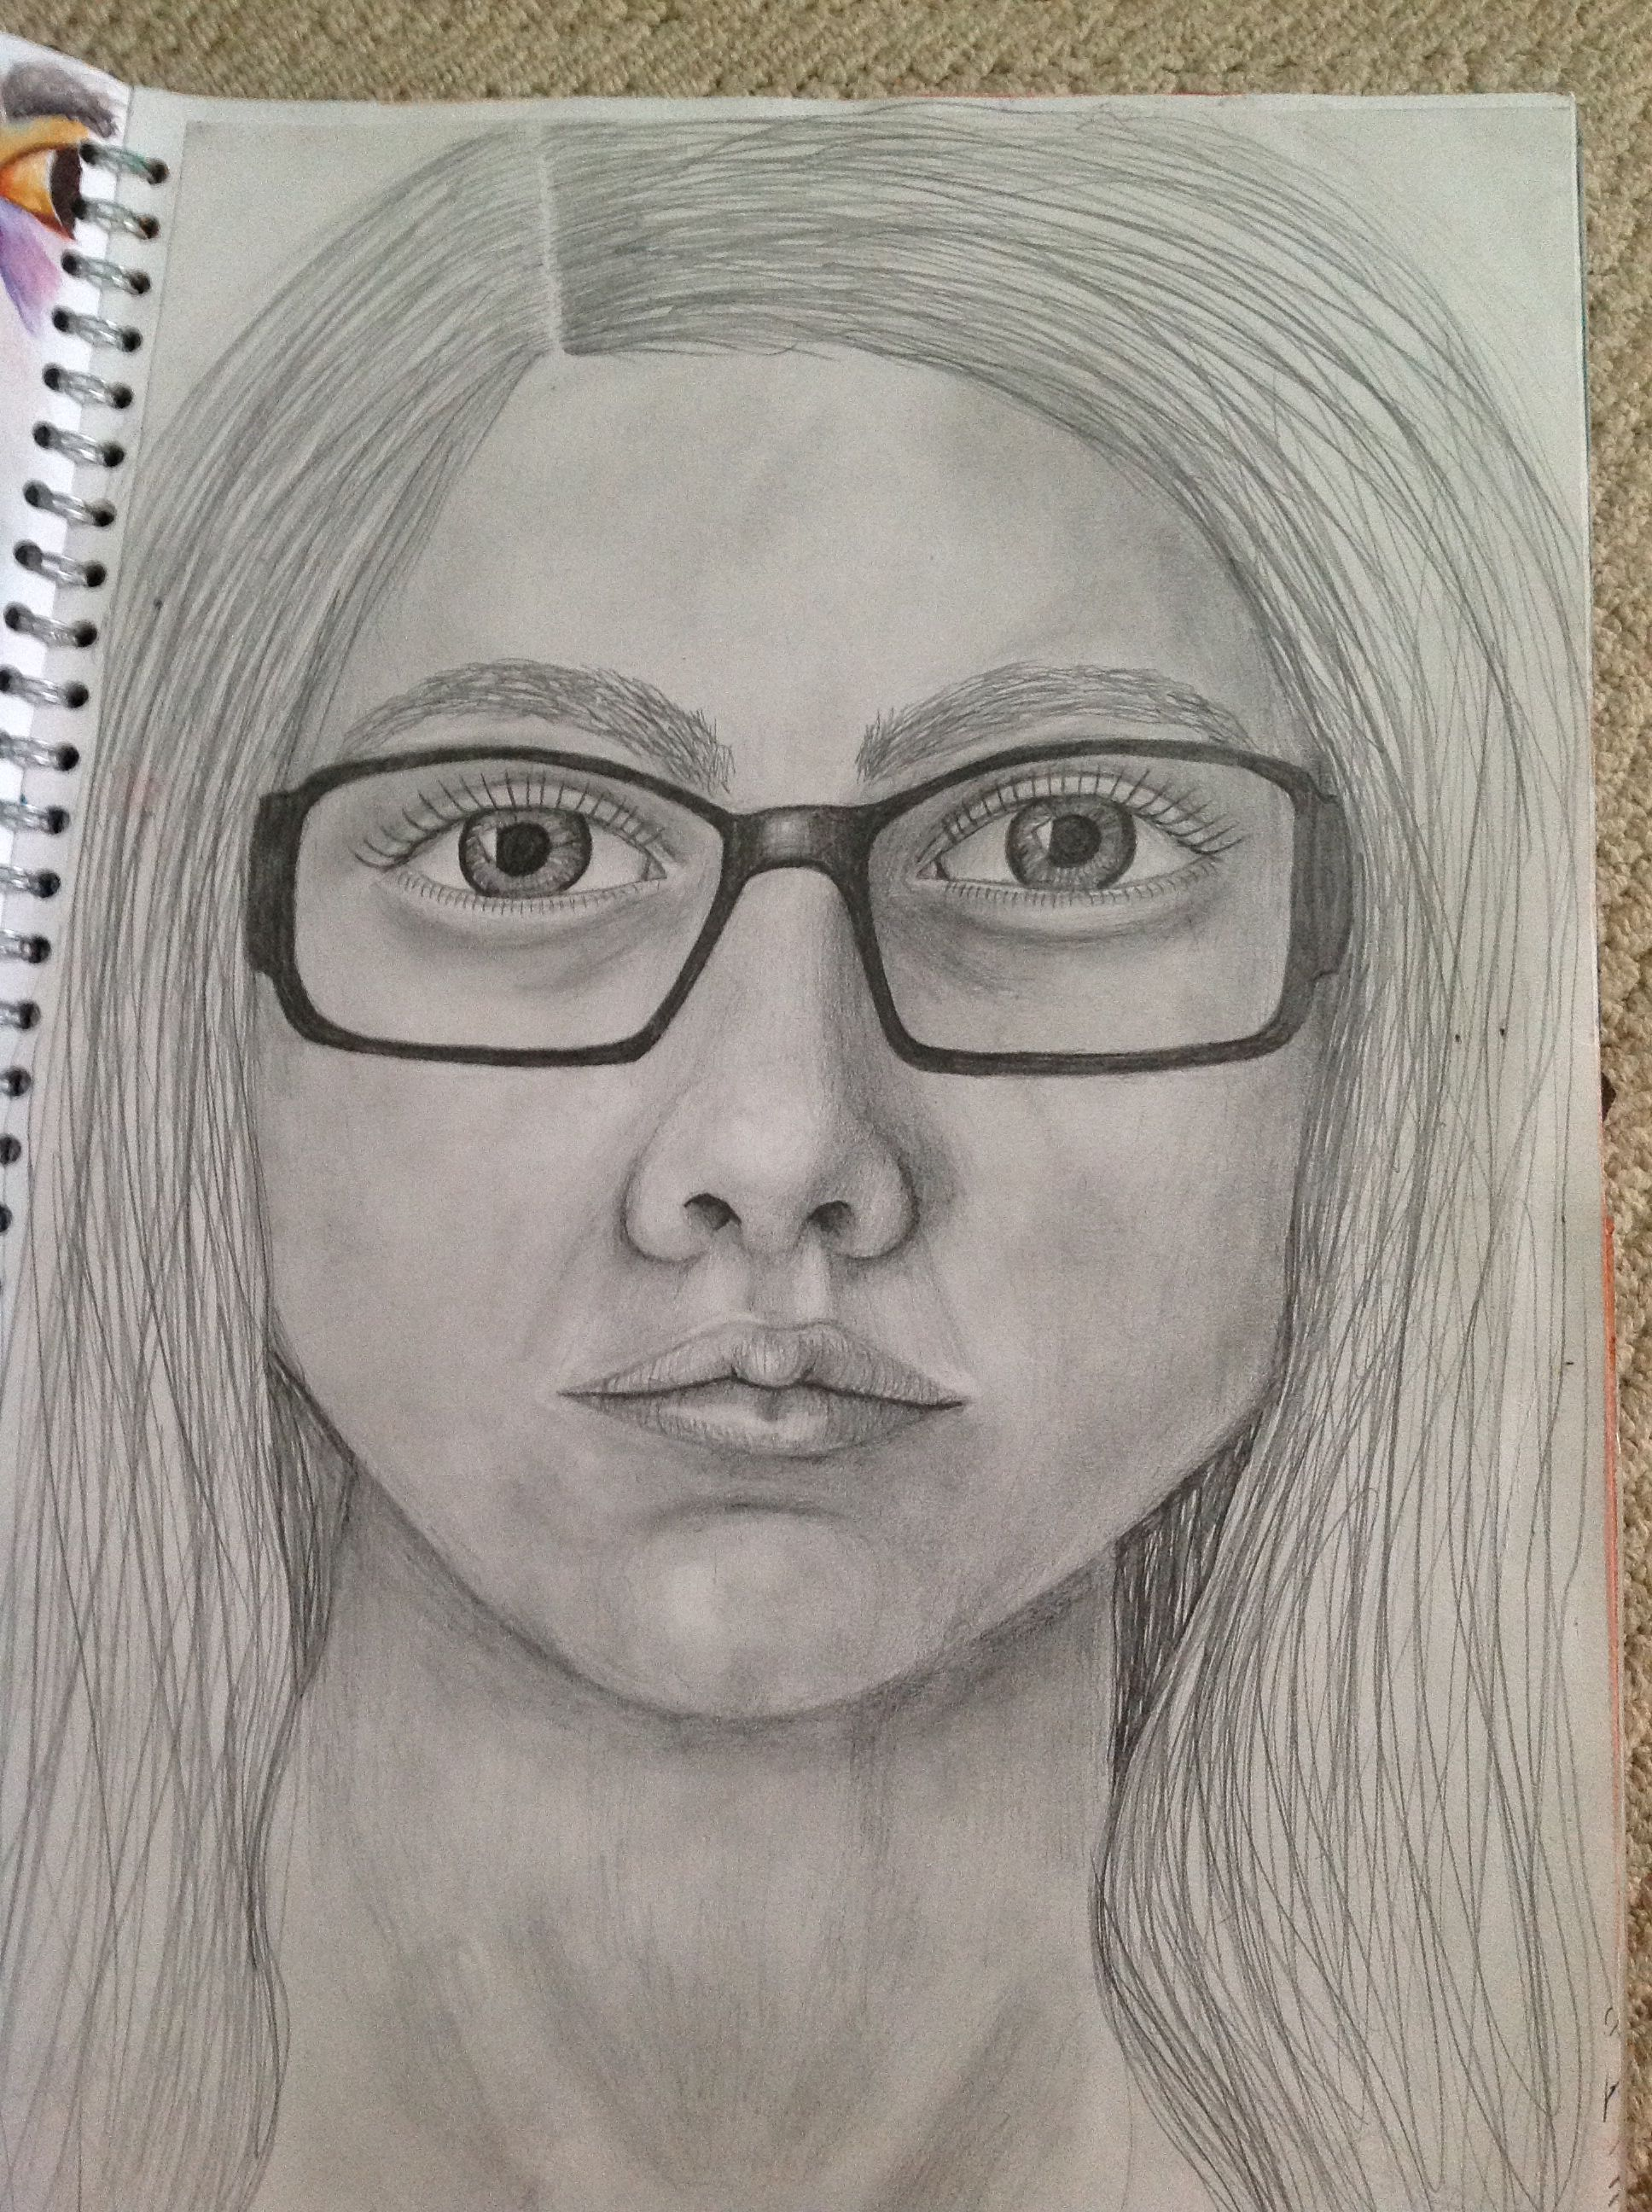 Self Portrait In Pencil For Human Form As Art